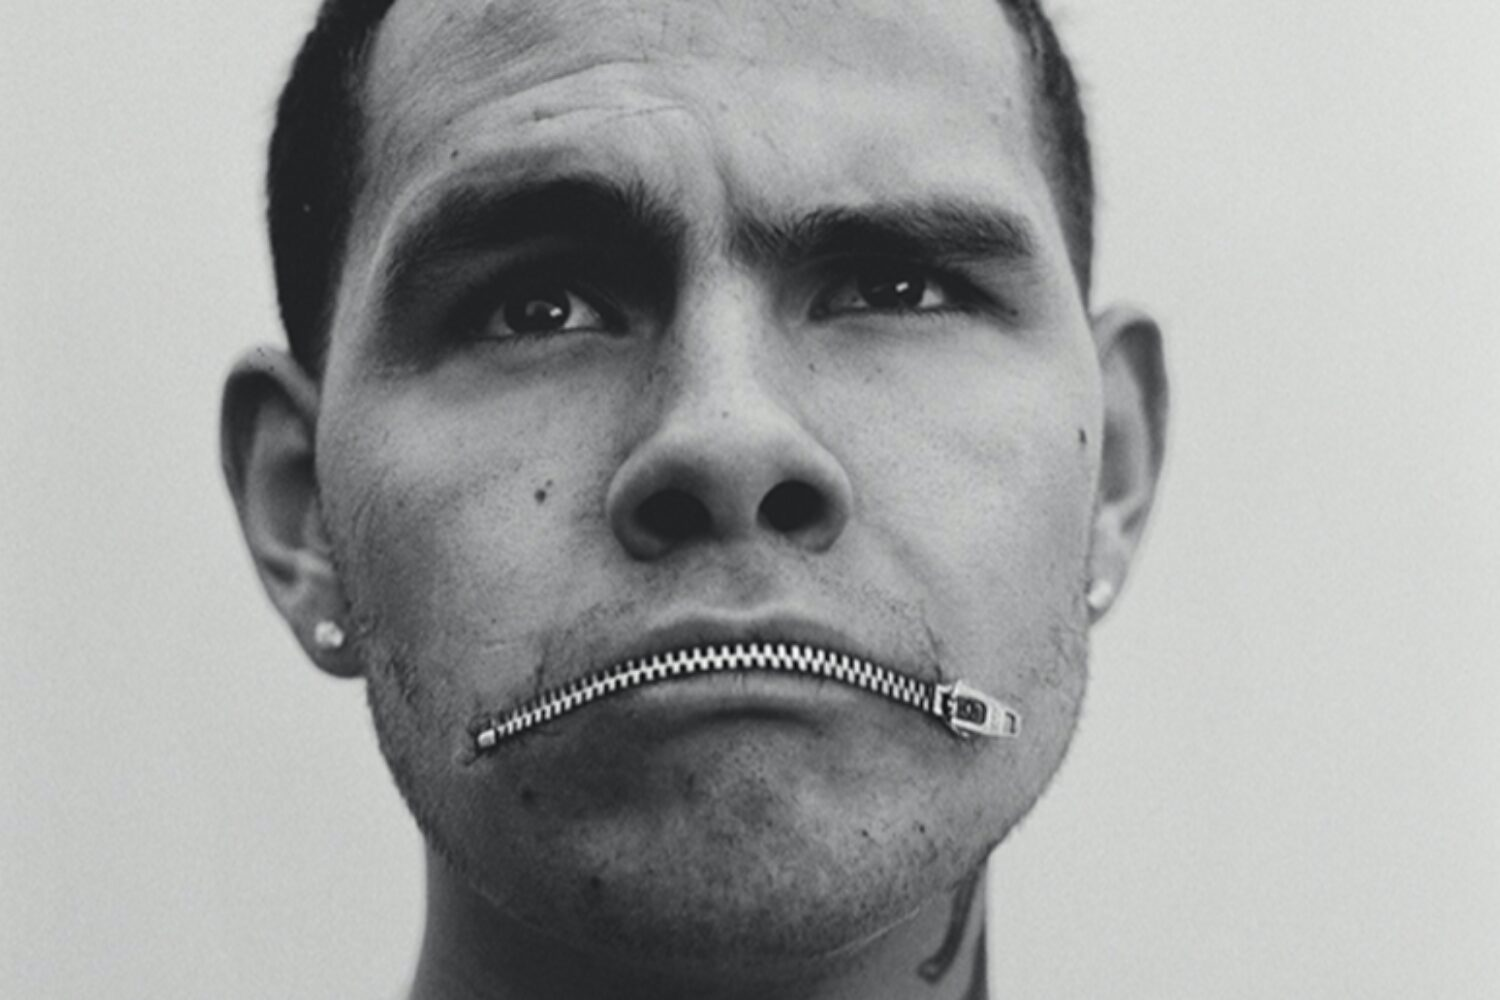 slowthai reveals new track 'Thoughts'